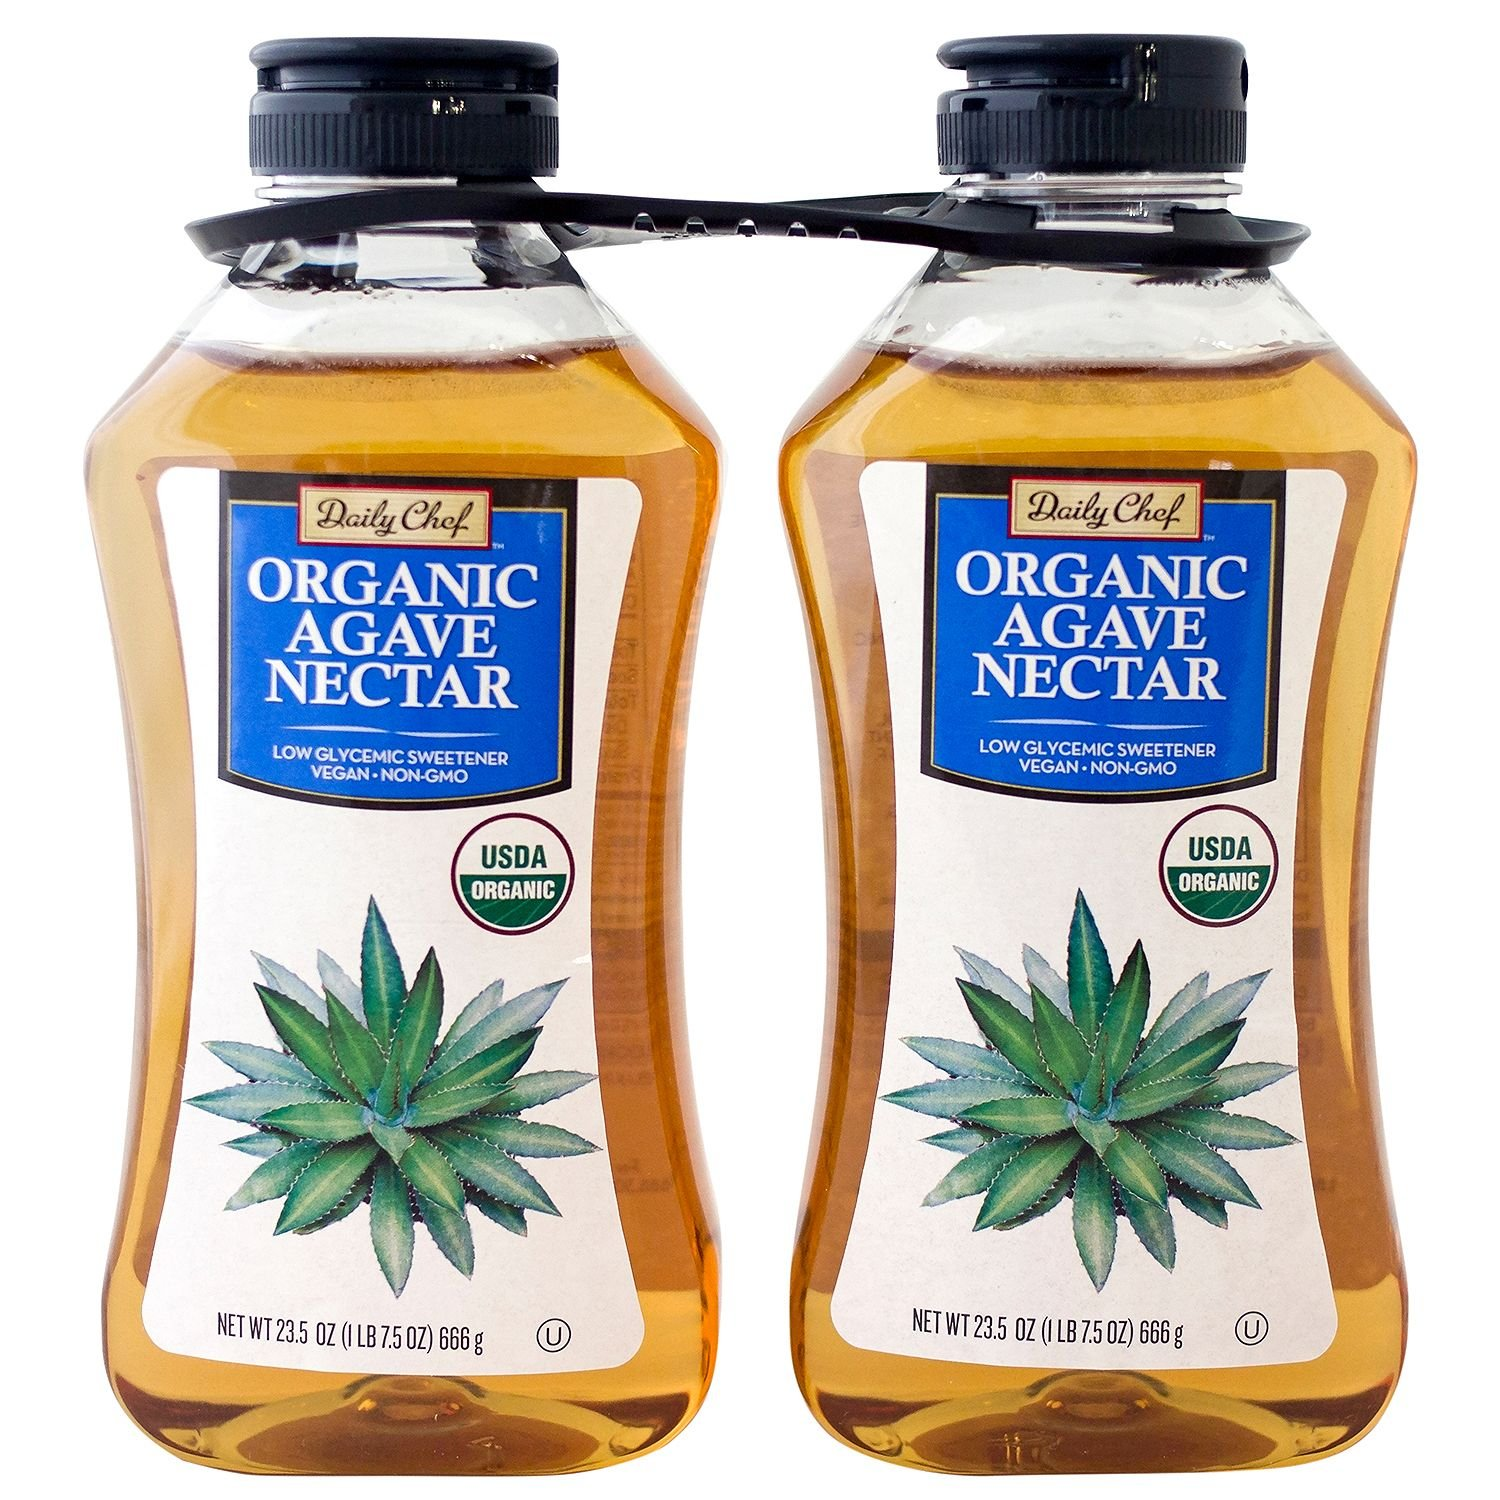 Daily Chef Organic Agave Nectar (23.5 oz, 2 pk.) (pack of 6)